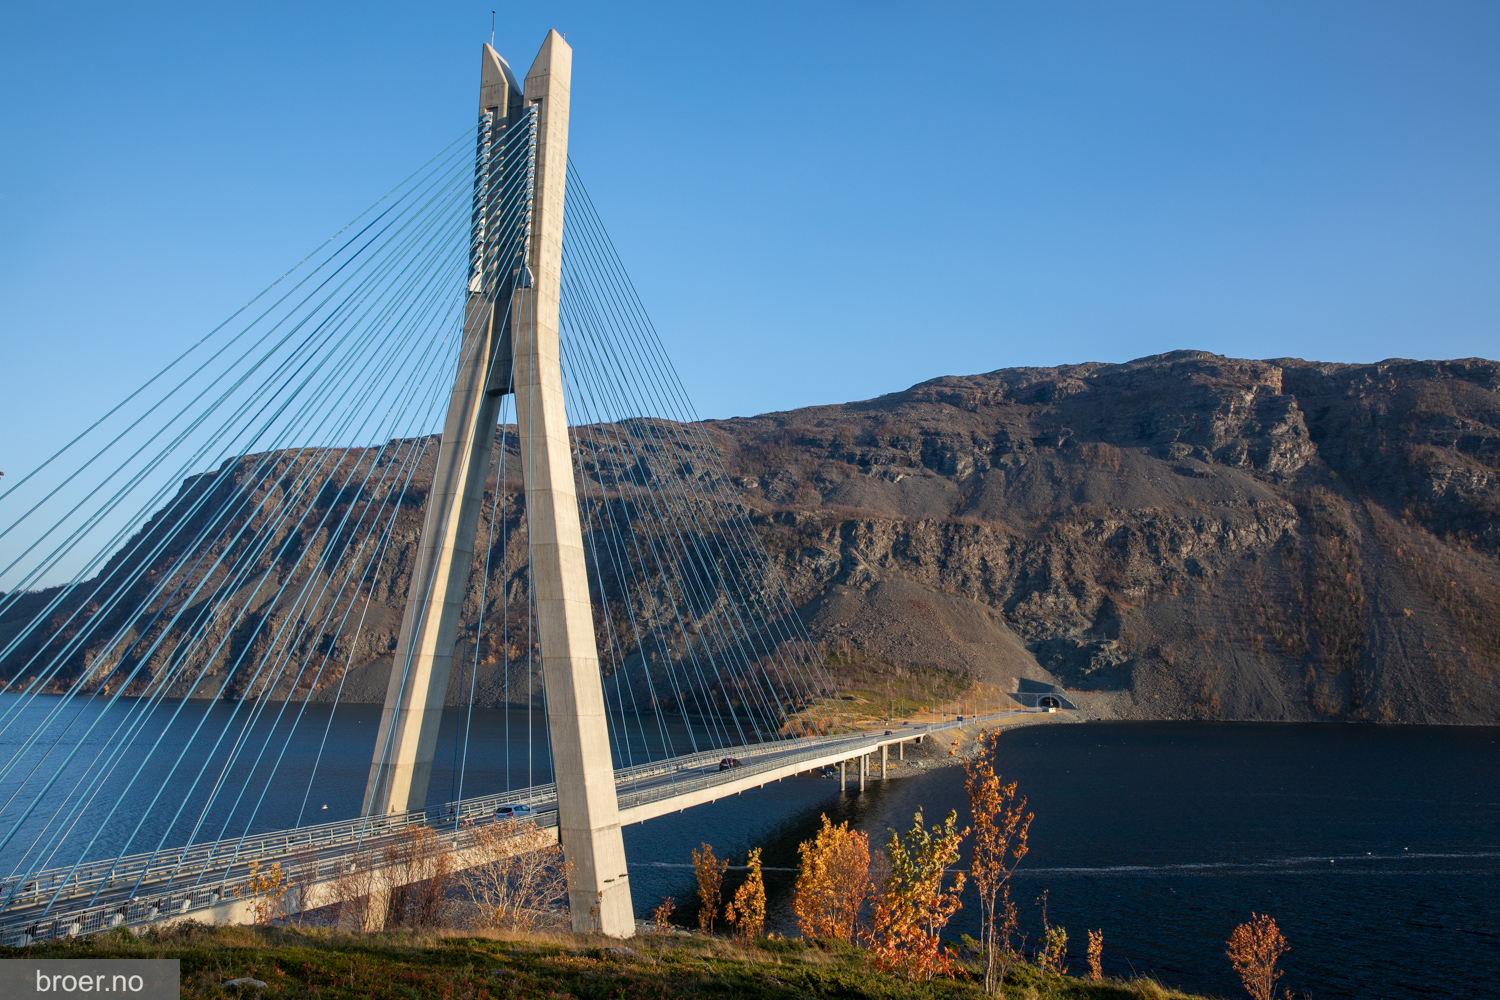 picture of Kåfjord bridge